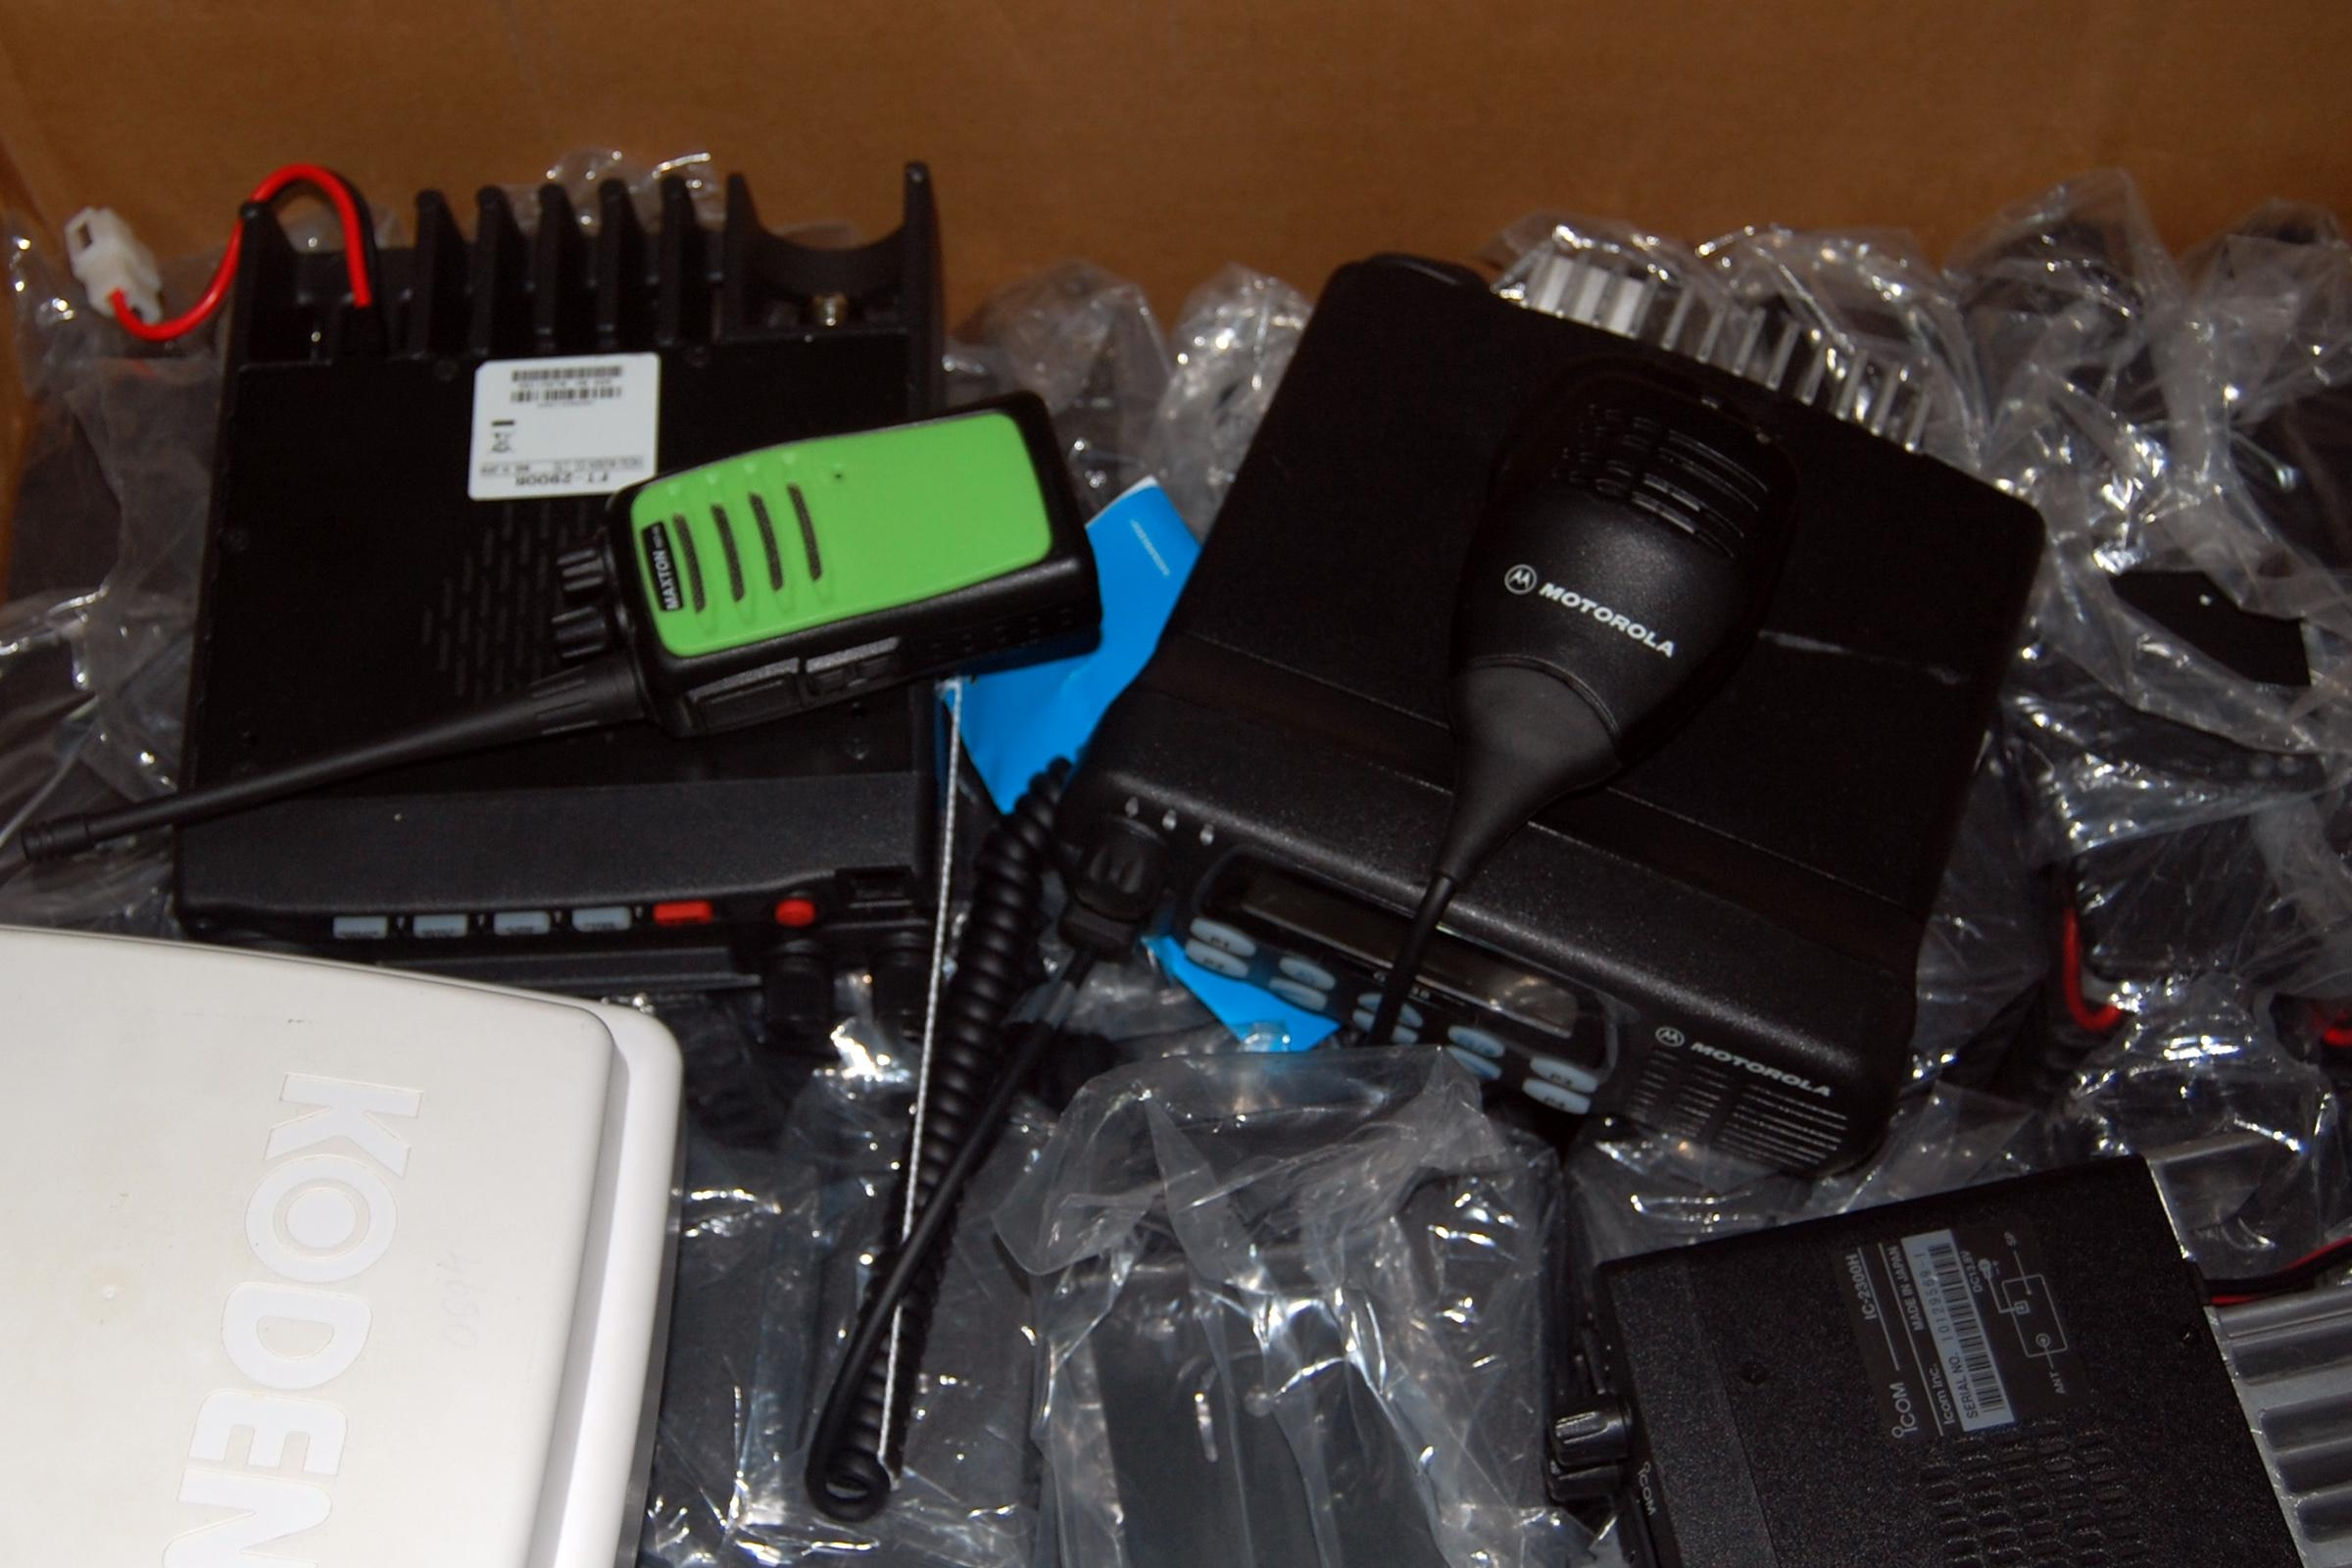 walky talky seized